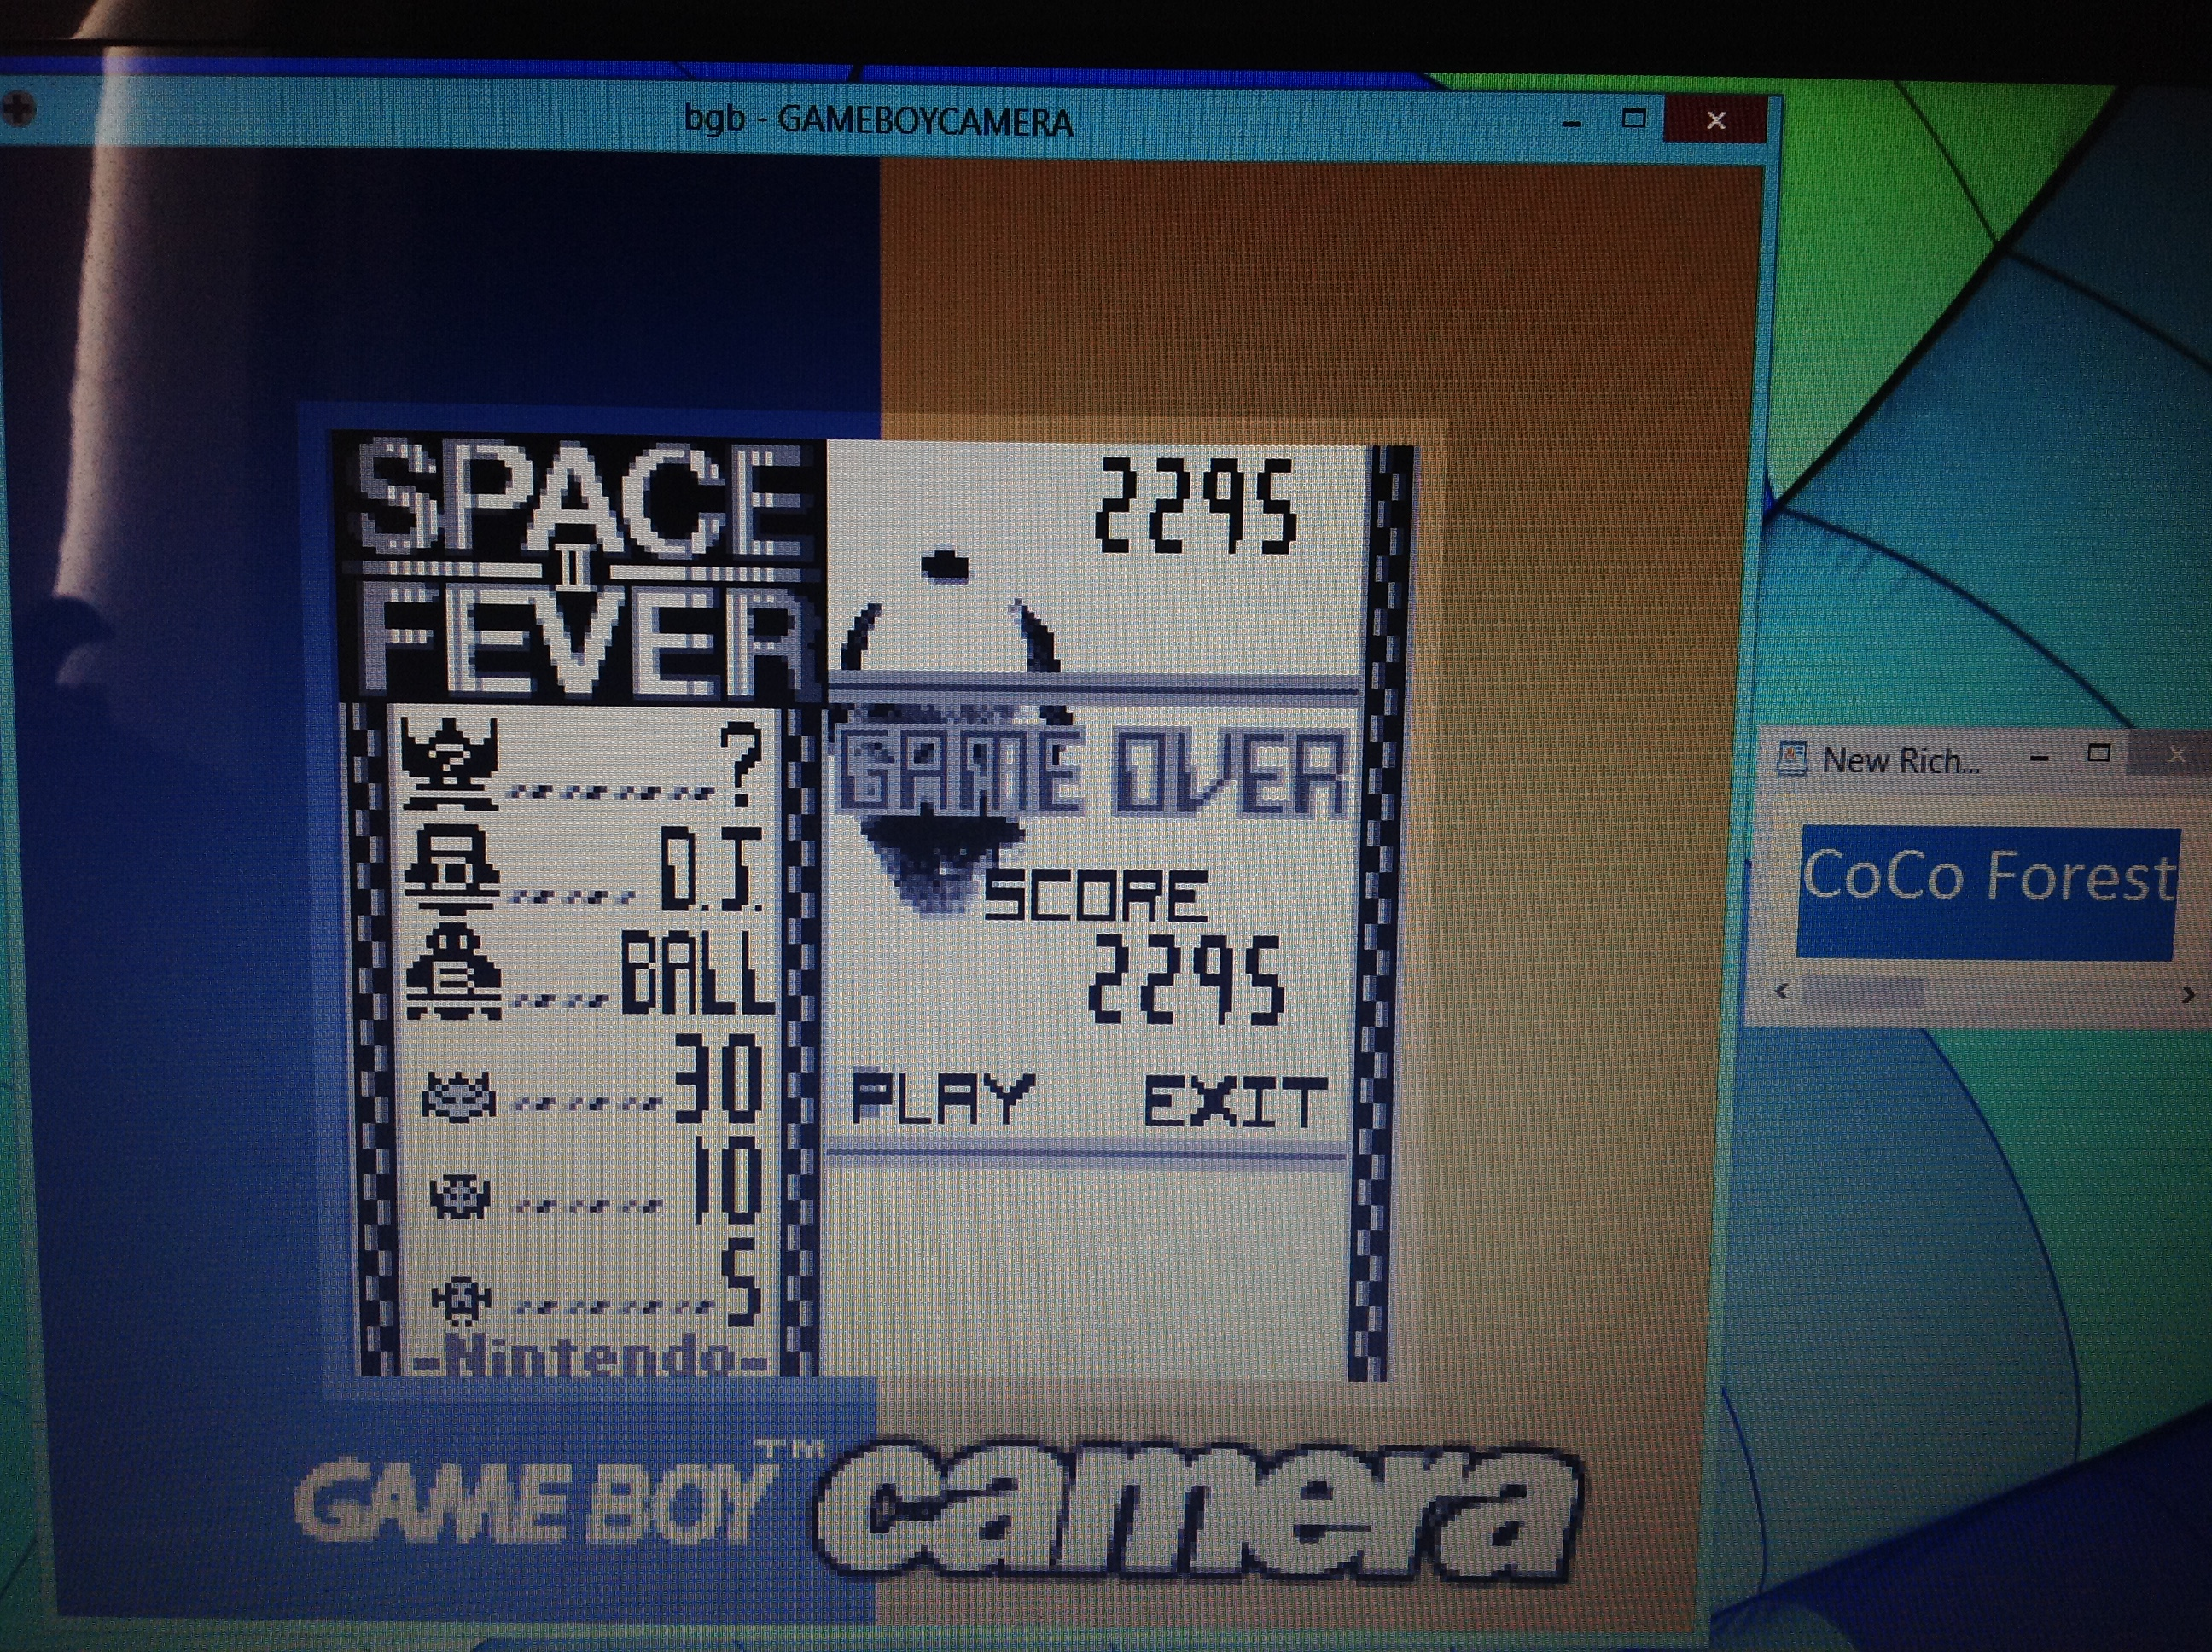 CoCoForest: Game Boy Camera: Space Fever 2 (Game Boy Emulated) 2,295 points on 2018-10-21 06:21:34